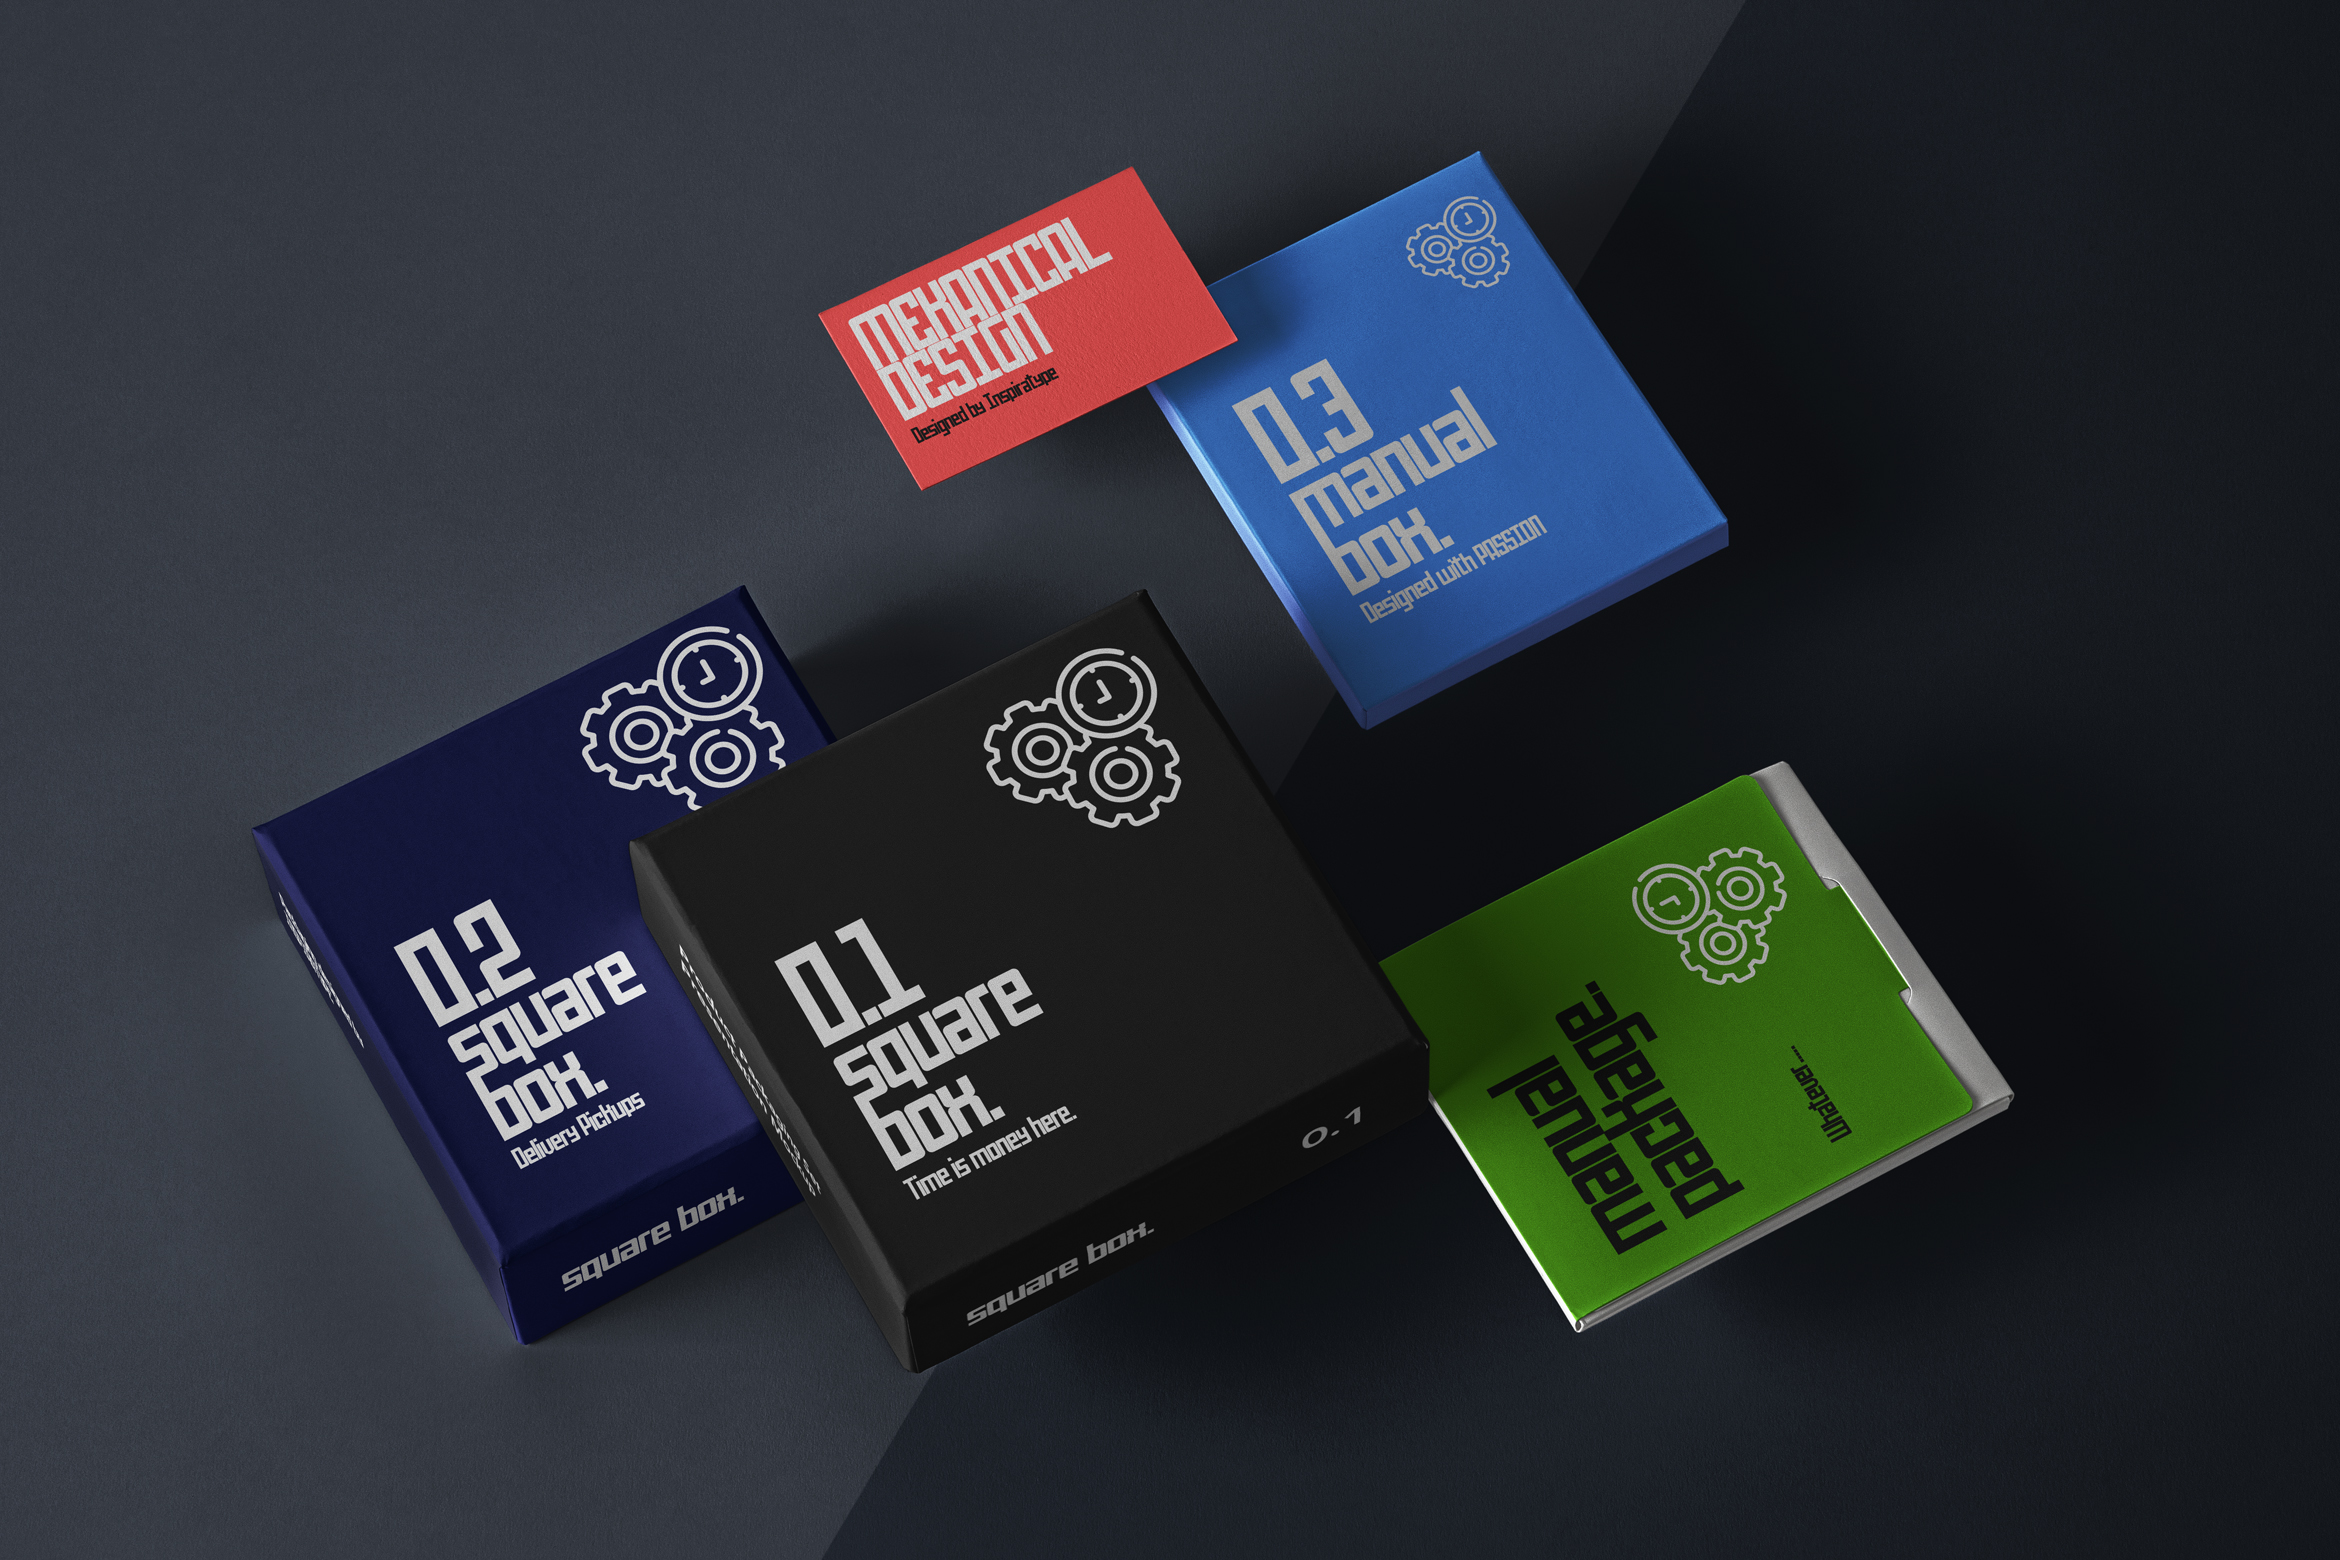 Download Cosmetic Box Mockup Free Download Free Psd Mockups Free Psd Mockups Smart Object And Templates To Create Magazines Books Stationery Clothing Mobile Packaging Business Cards